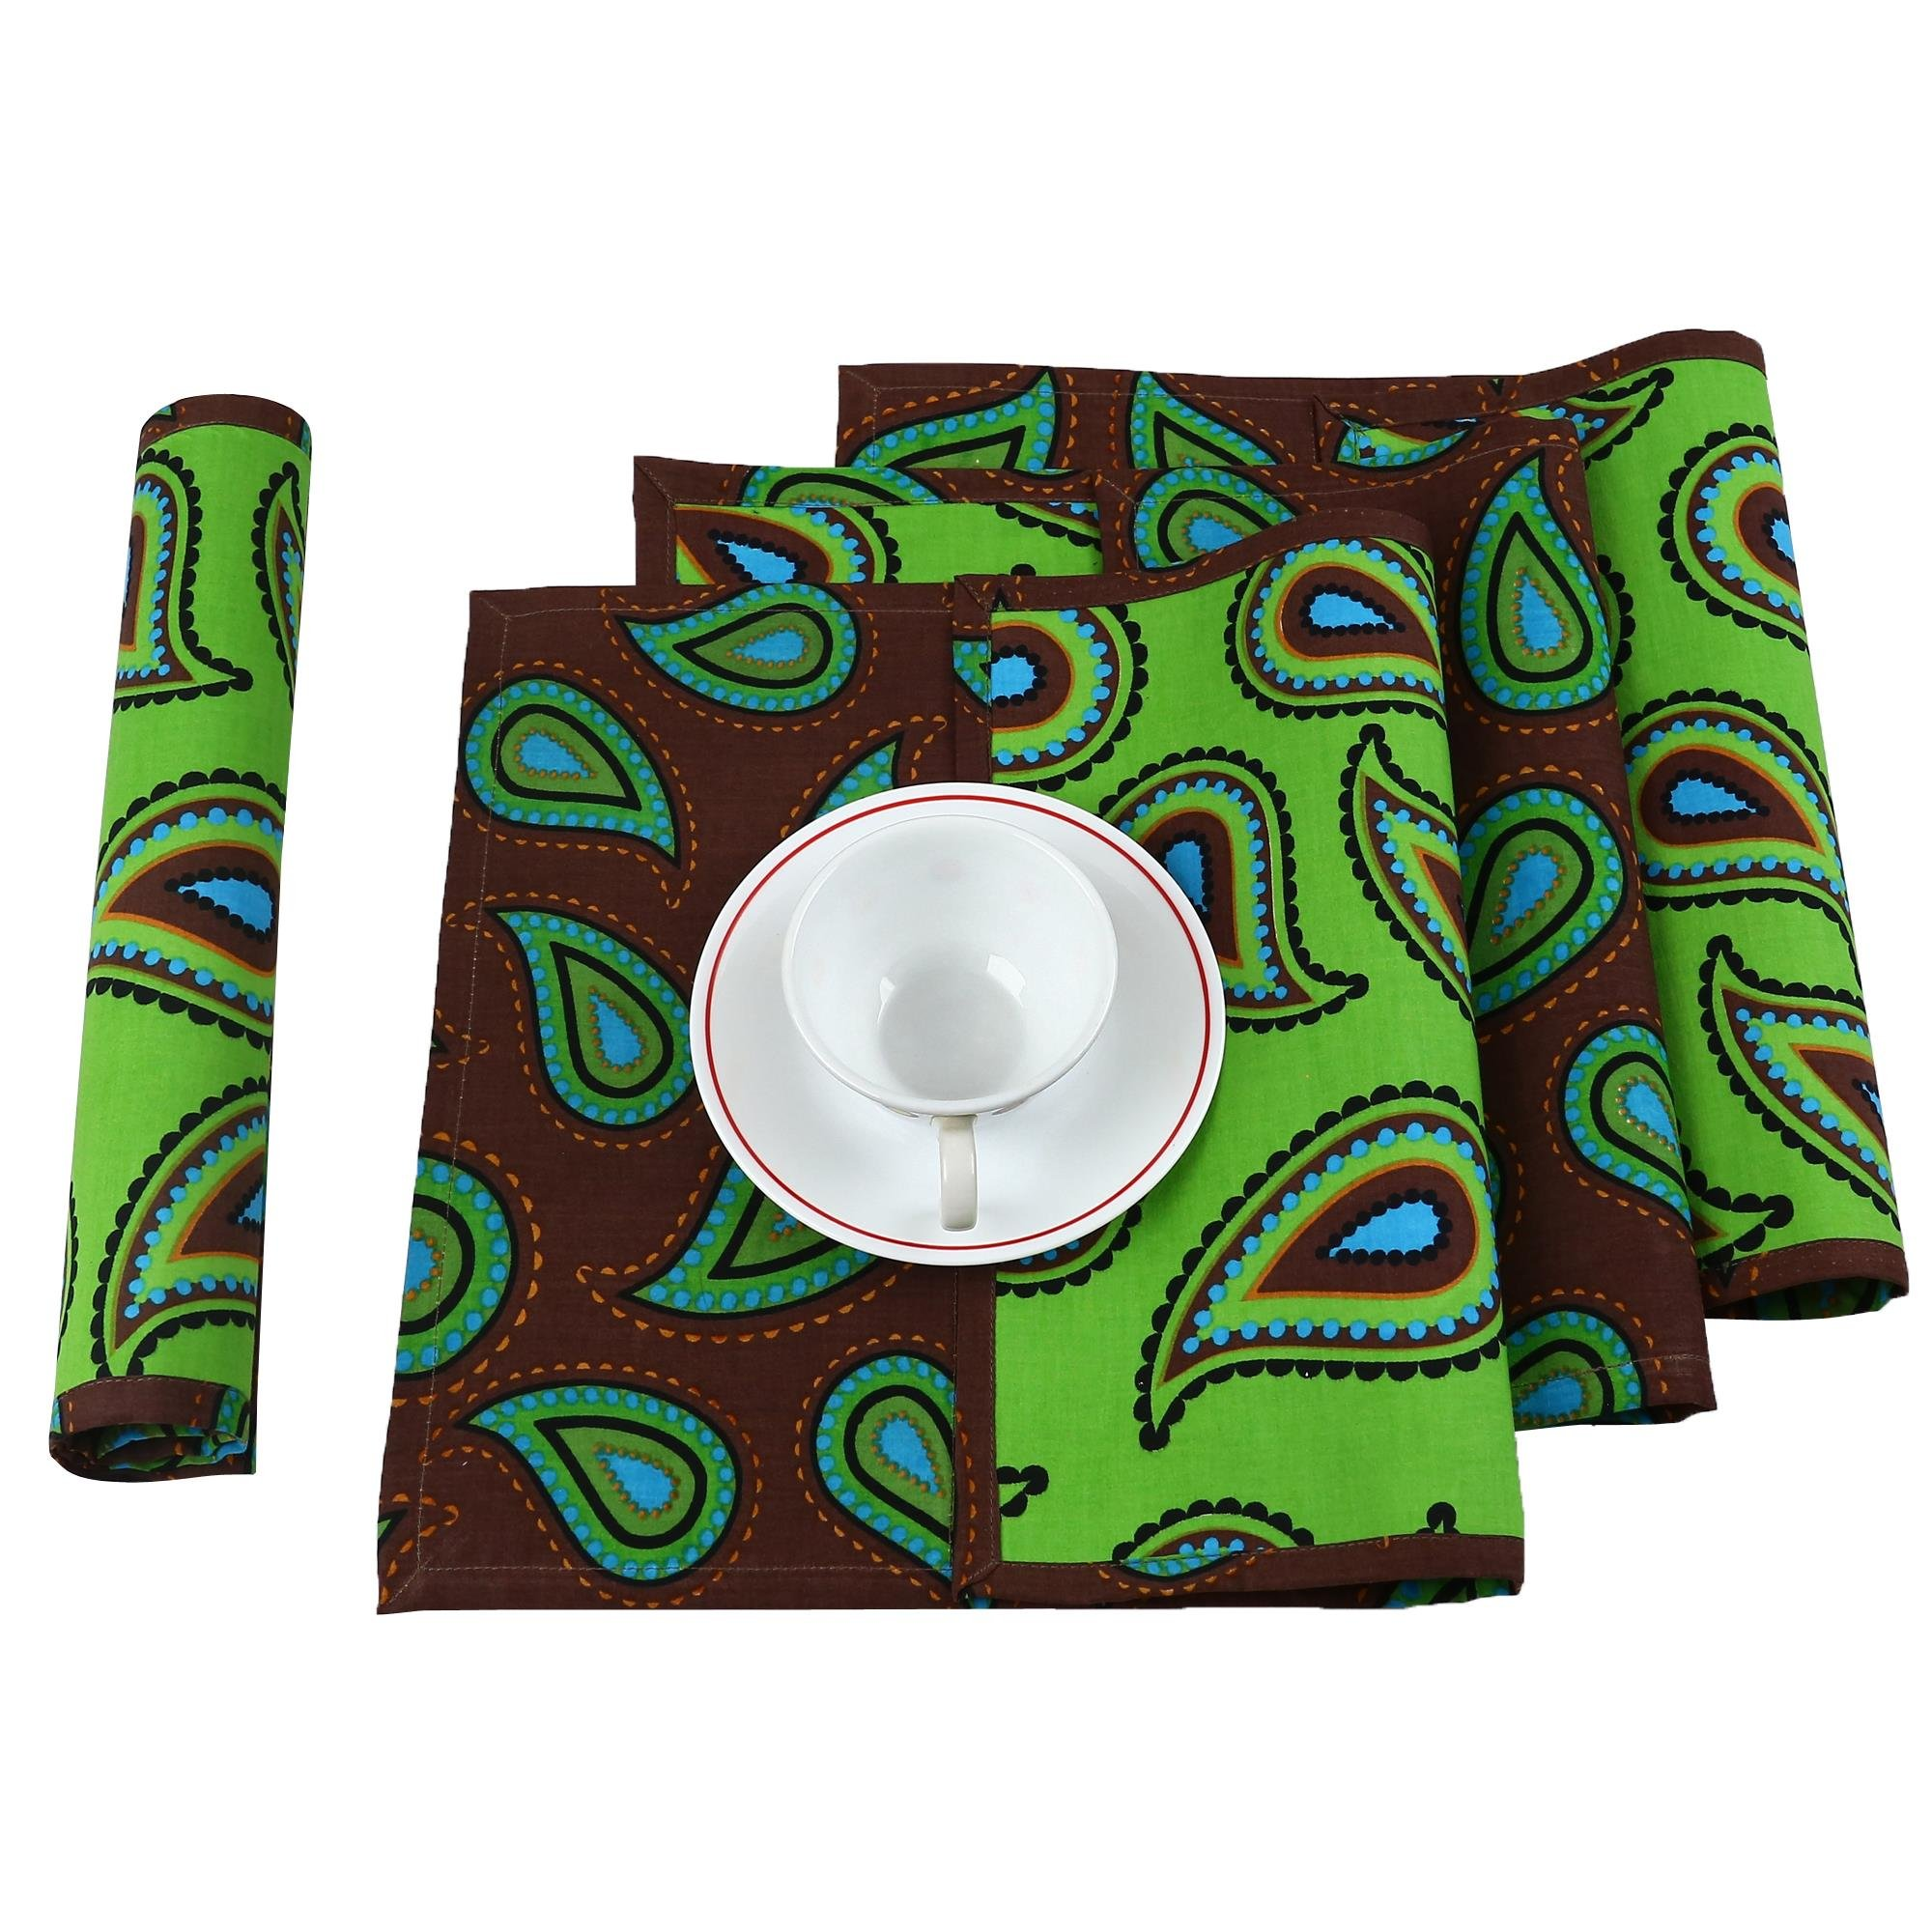 Reversible Placemats Set of 12 Home Décor Printed Cotton Indian 200TC,13x19 Inches